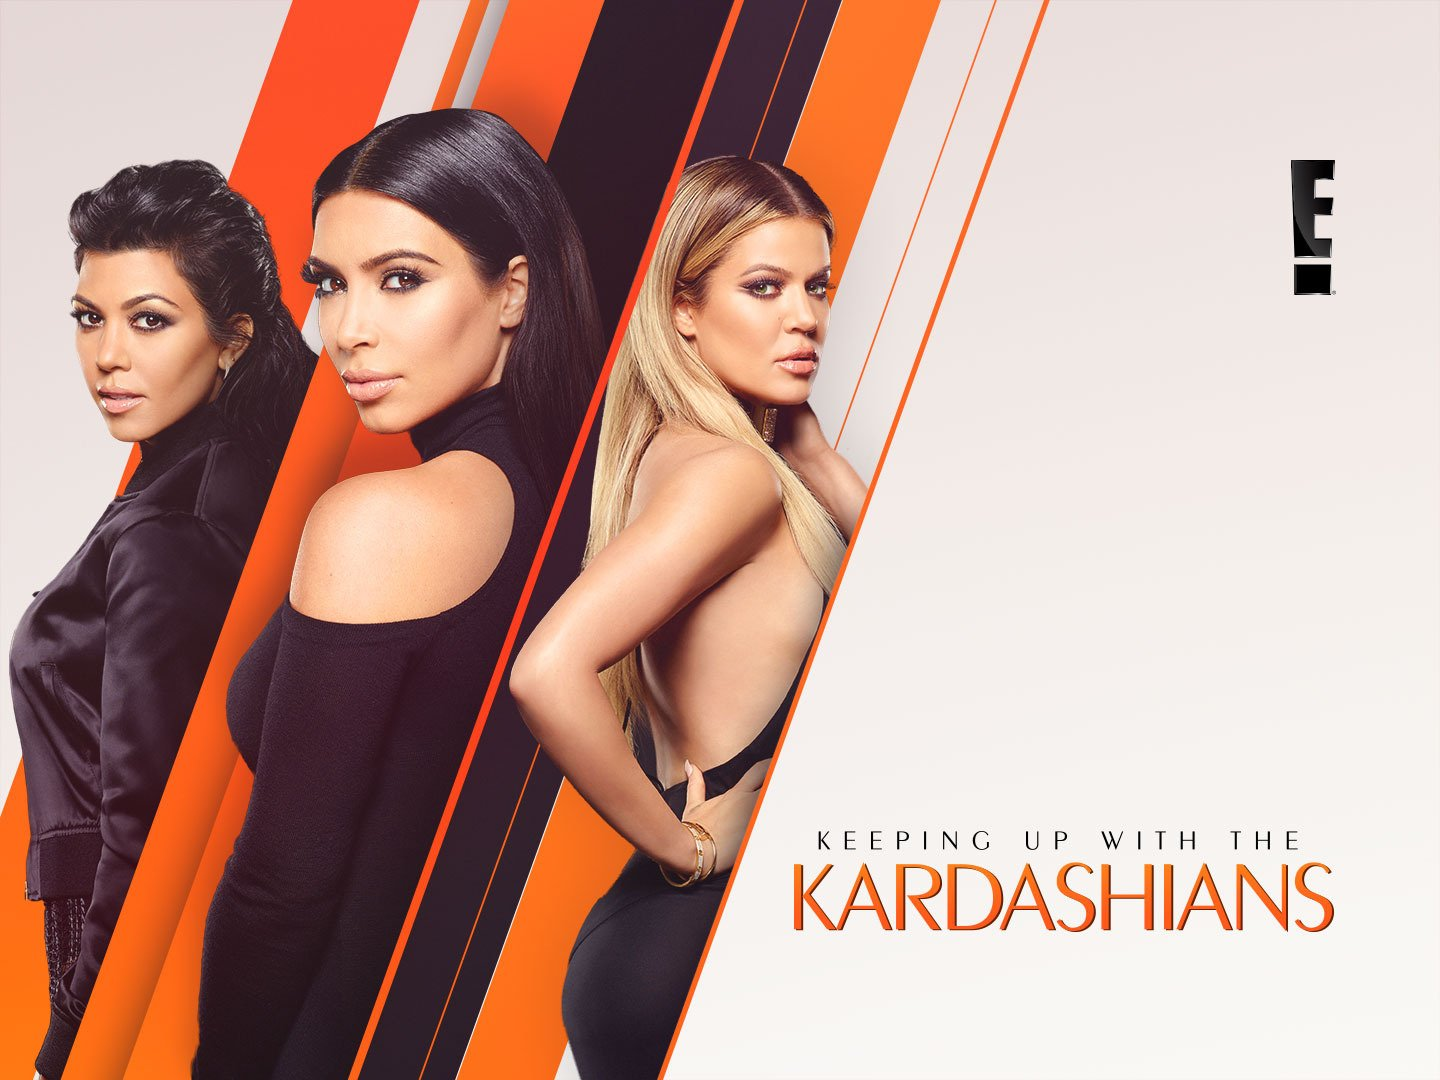 kuwtk season 14 episode 21